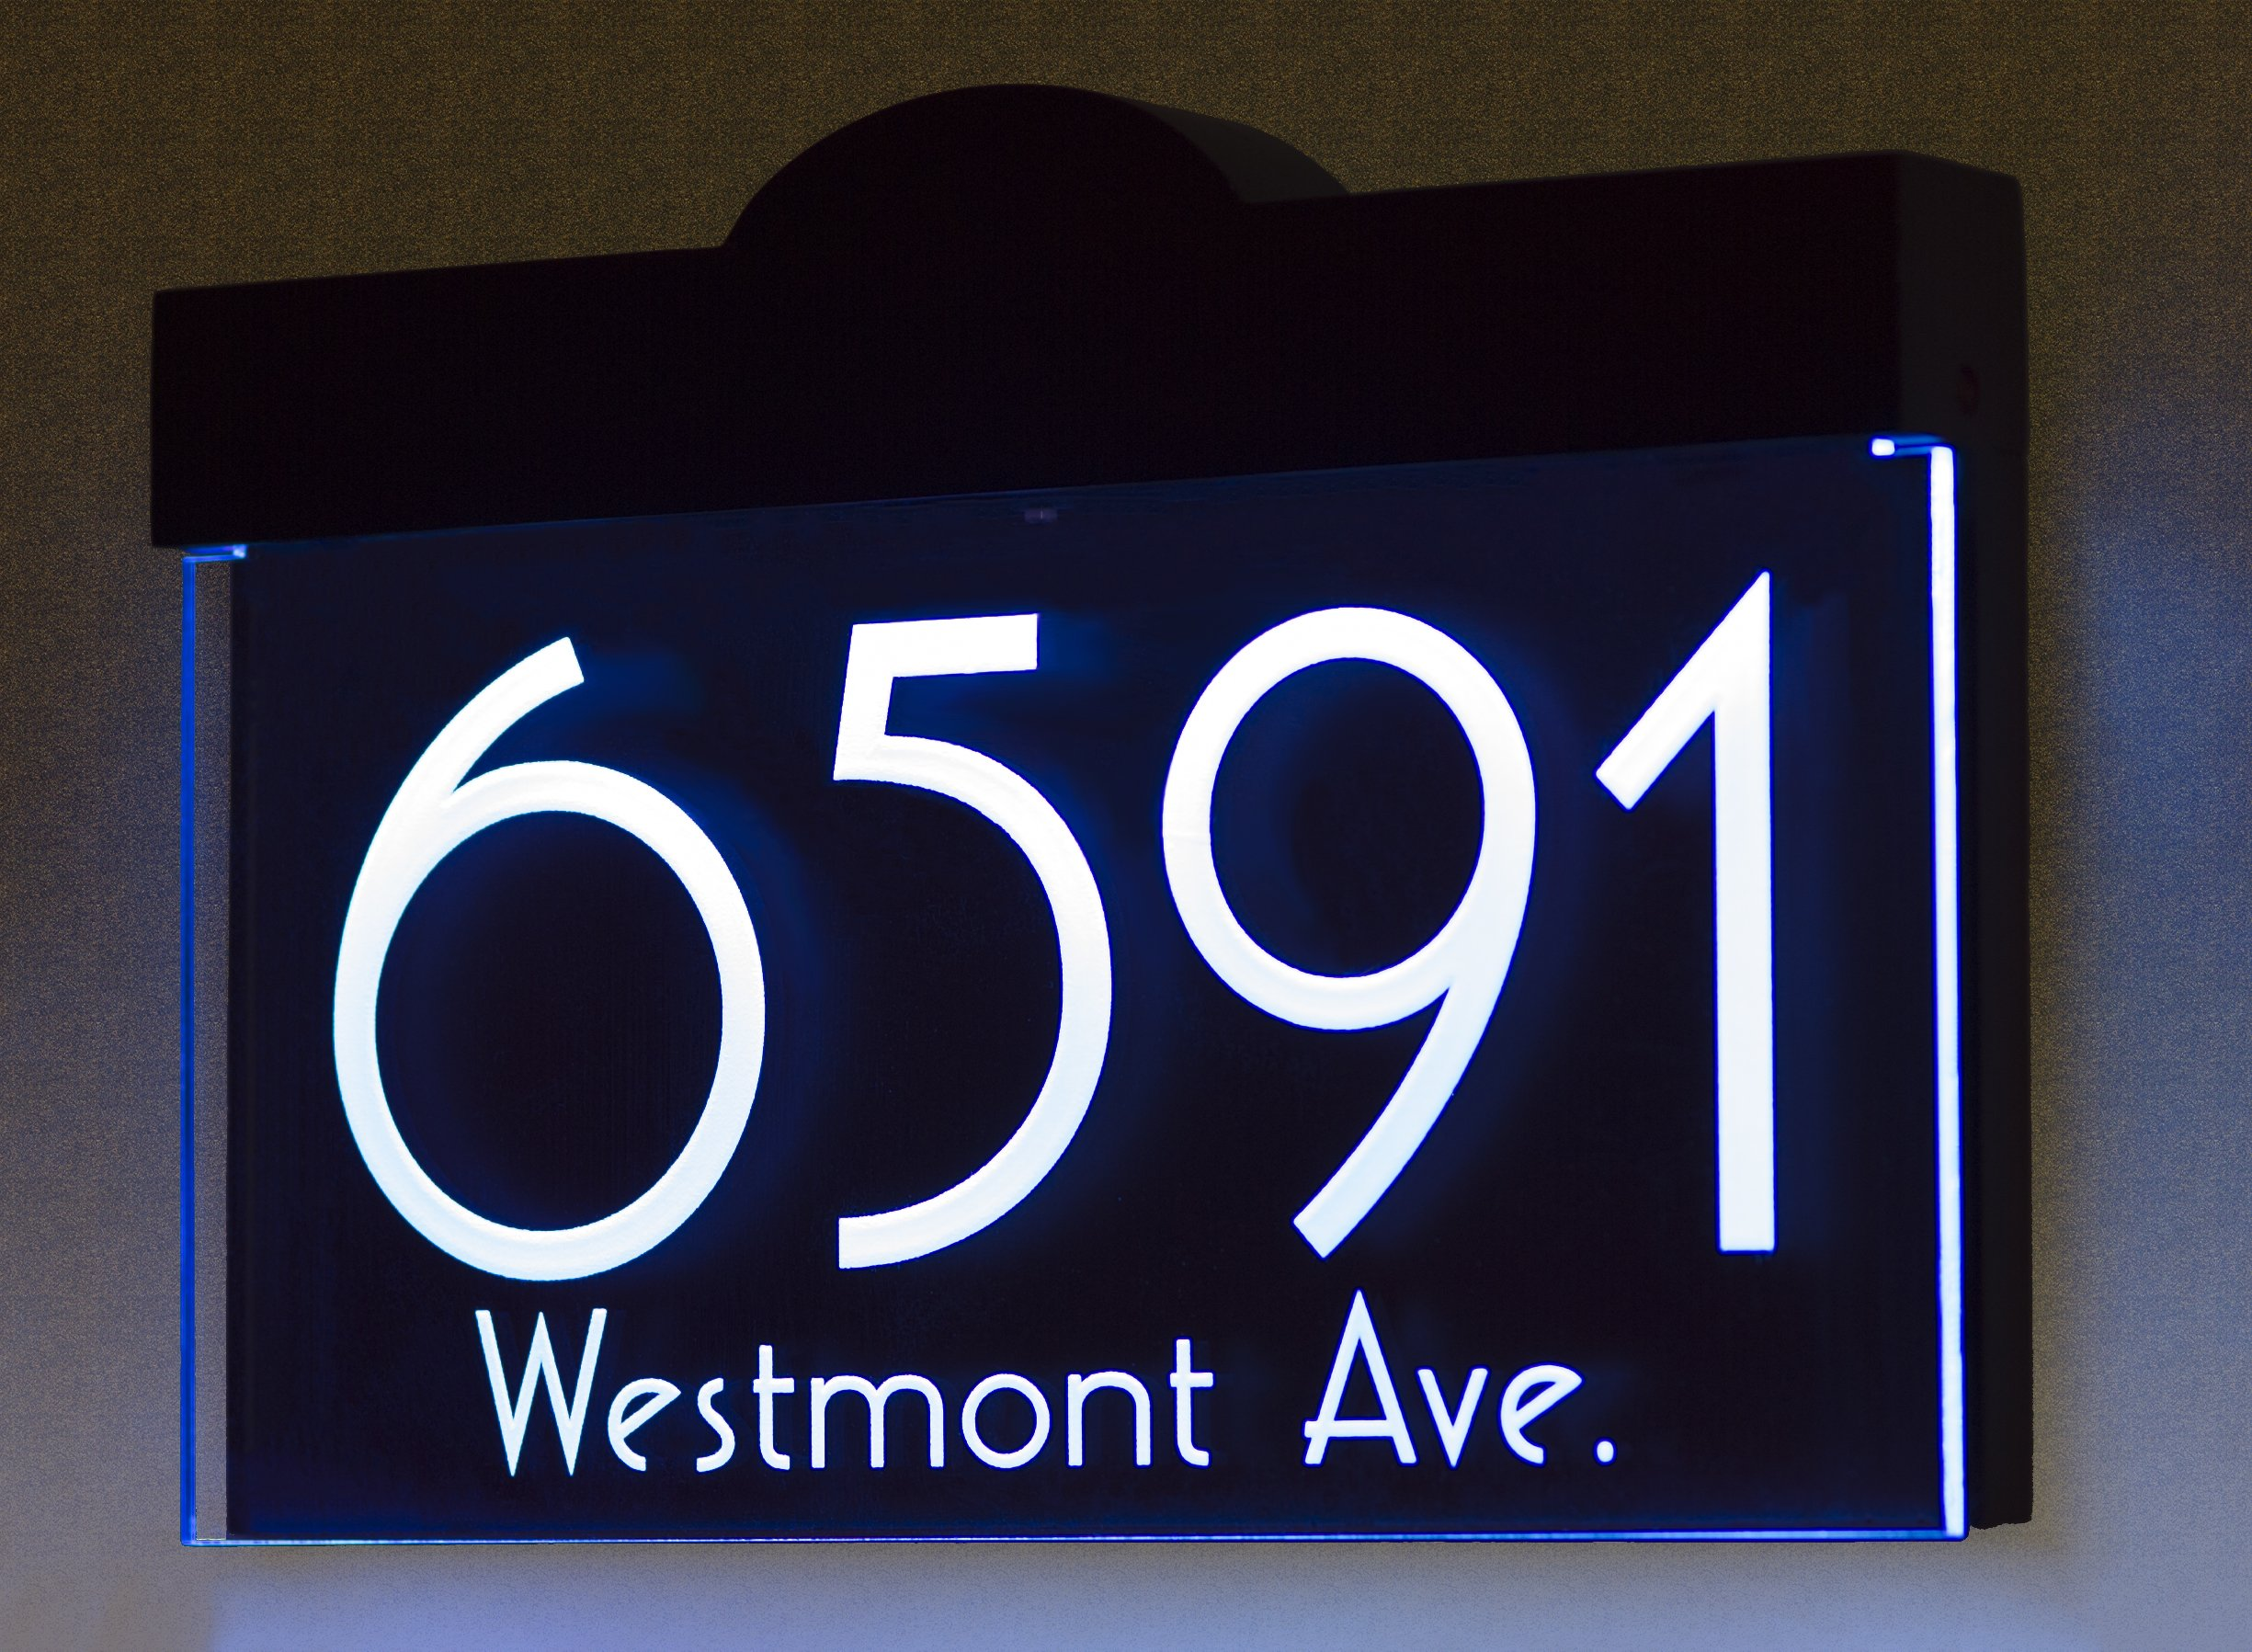 12V DC Auto On/Off Custom House Numbers Address Sign Address Plaque Lighted with LED - Laser Engraved On Acrylic Sign With Wood Frame